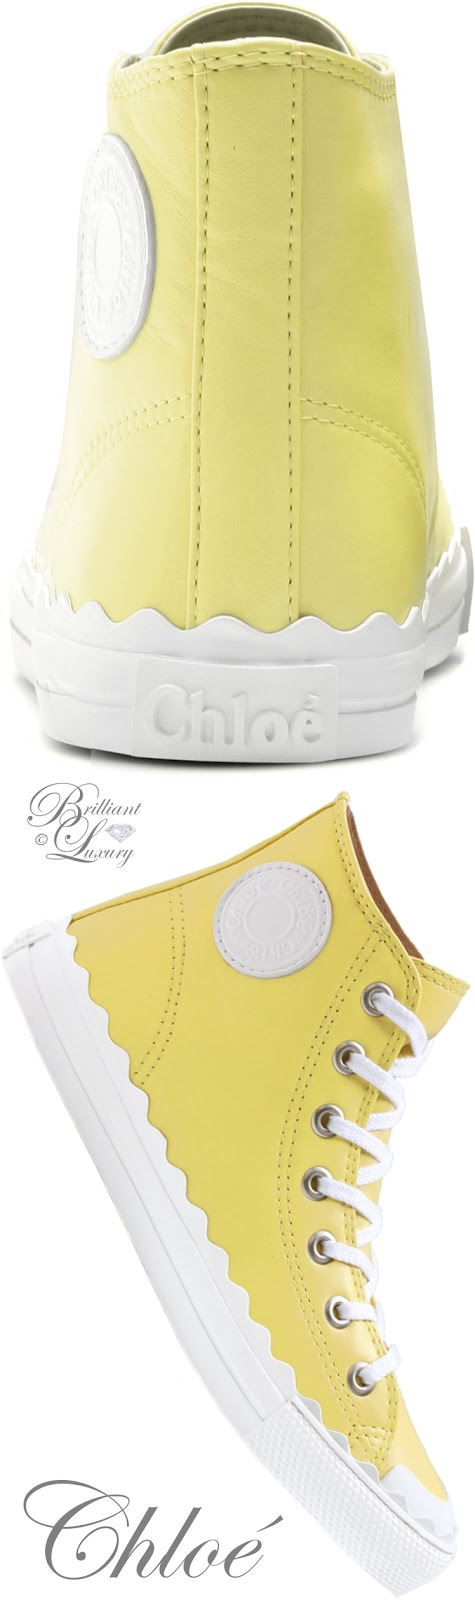 Brilliant Luxury ♦ Chloé high-top yellow leather sneakers